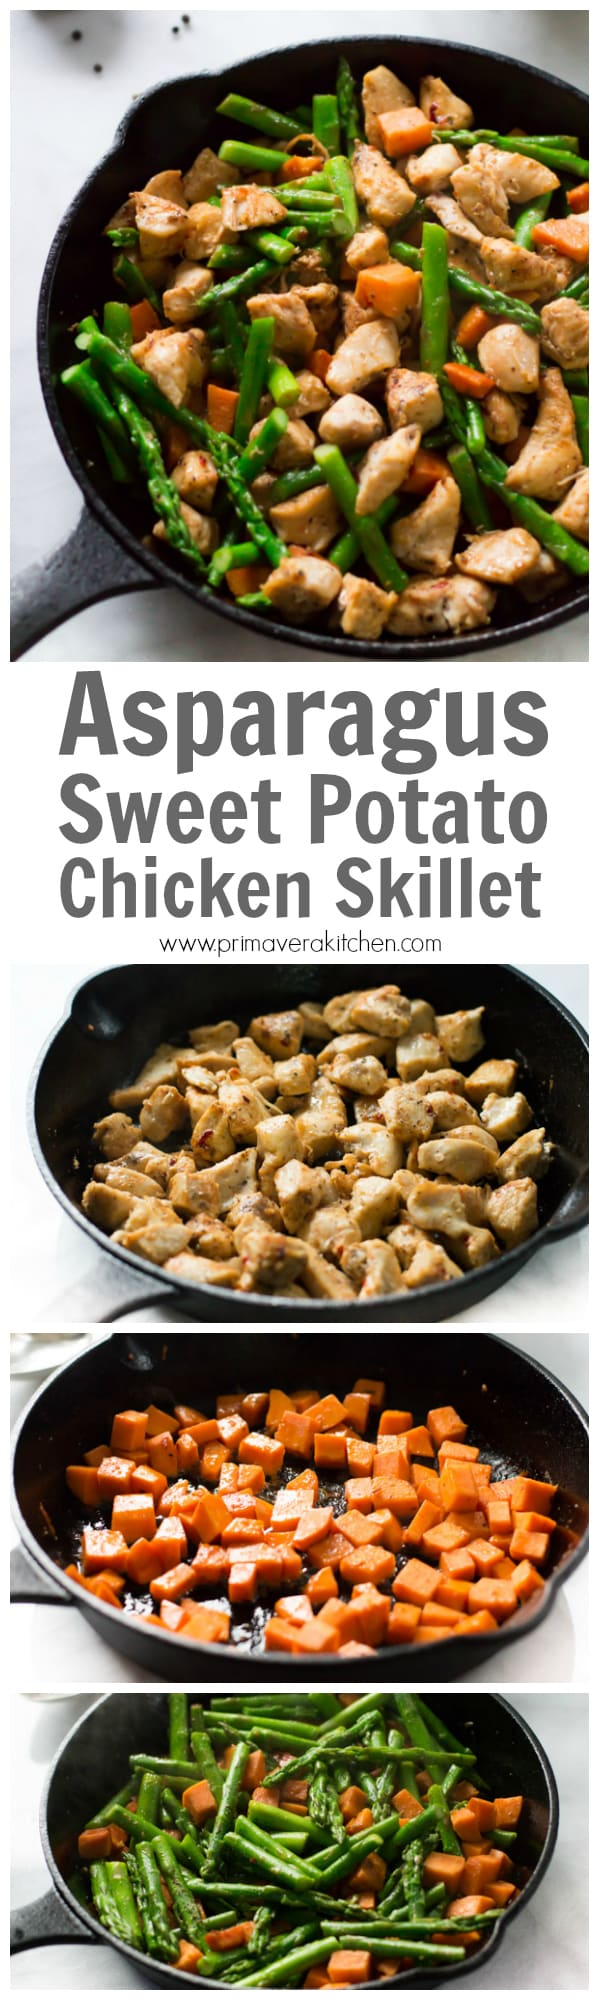 This Asparagus Sweet Potato Chicken Skillet Recipe Is A Delicious Healthy And Easy To Make Meal